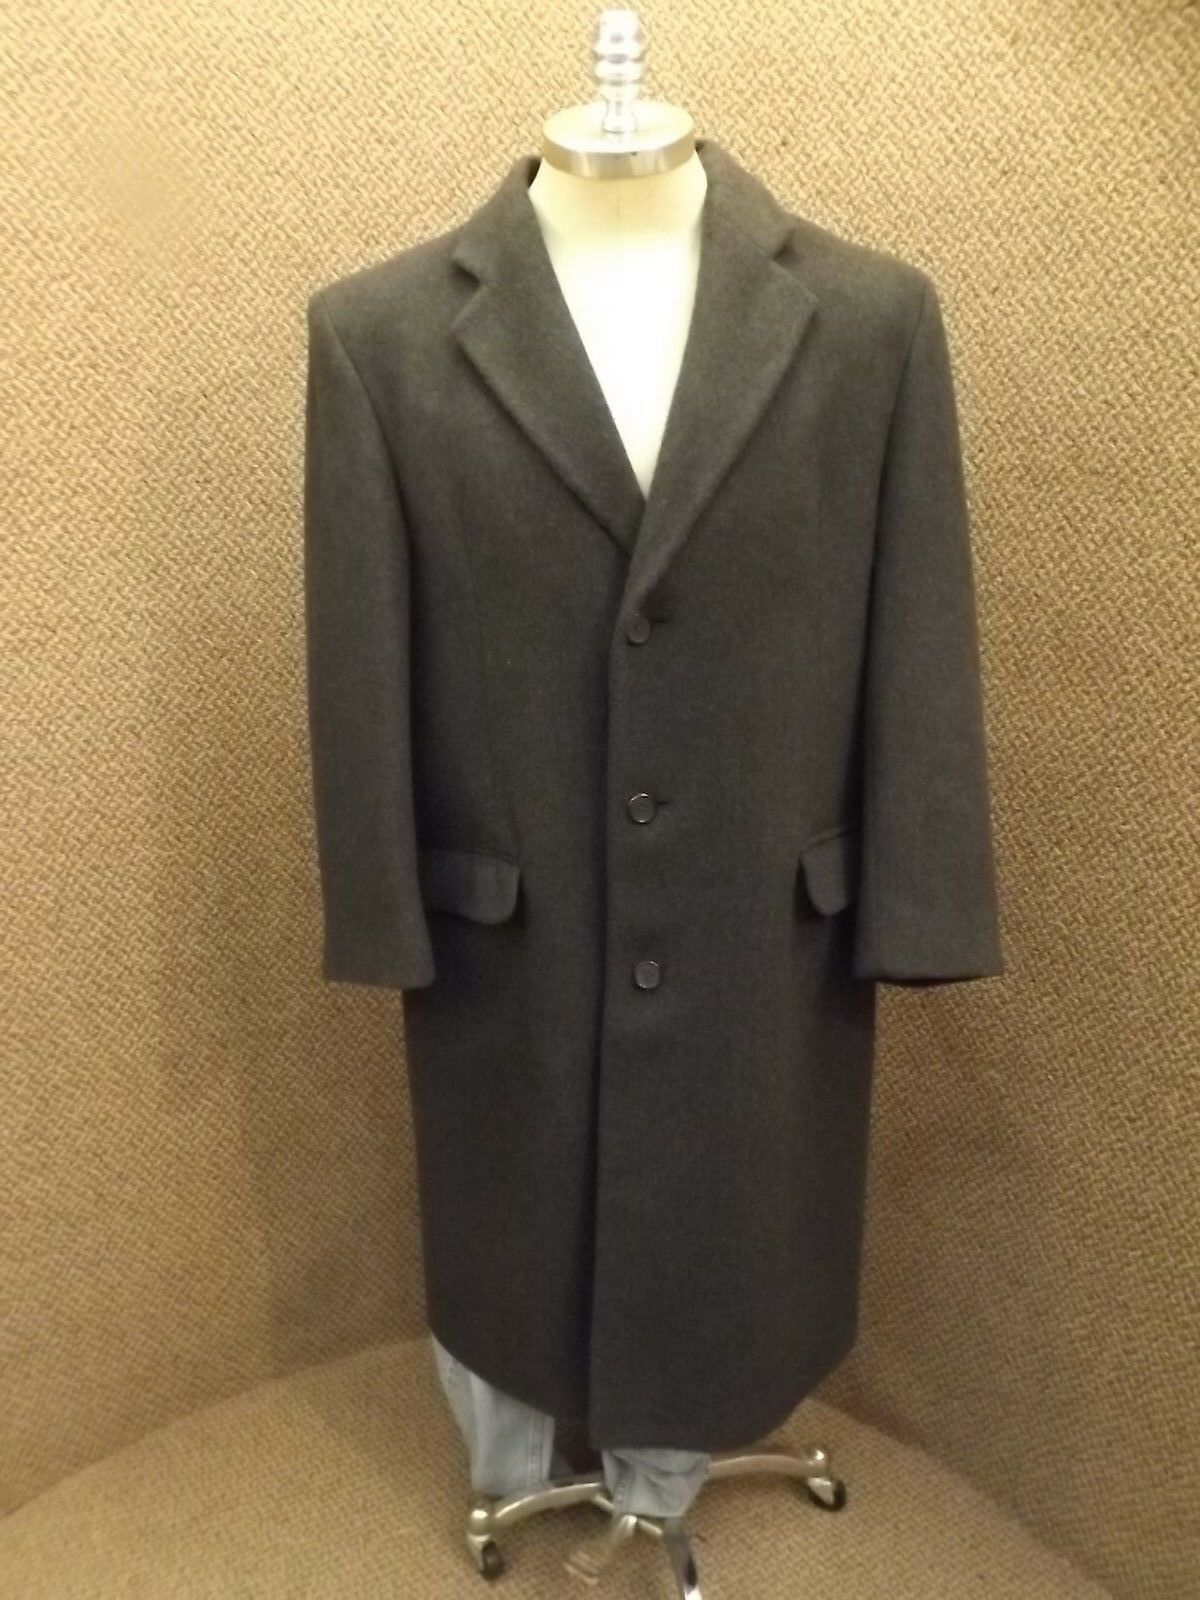 Classy Vtg Slovakia Made Teller Coat Charcoal Cashmere Wool Long Trench Sz 44-46